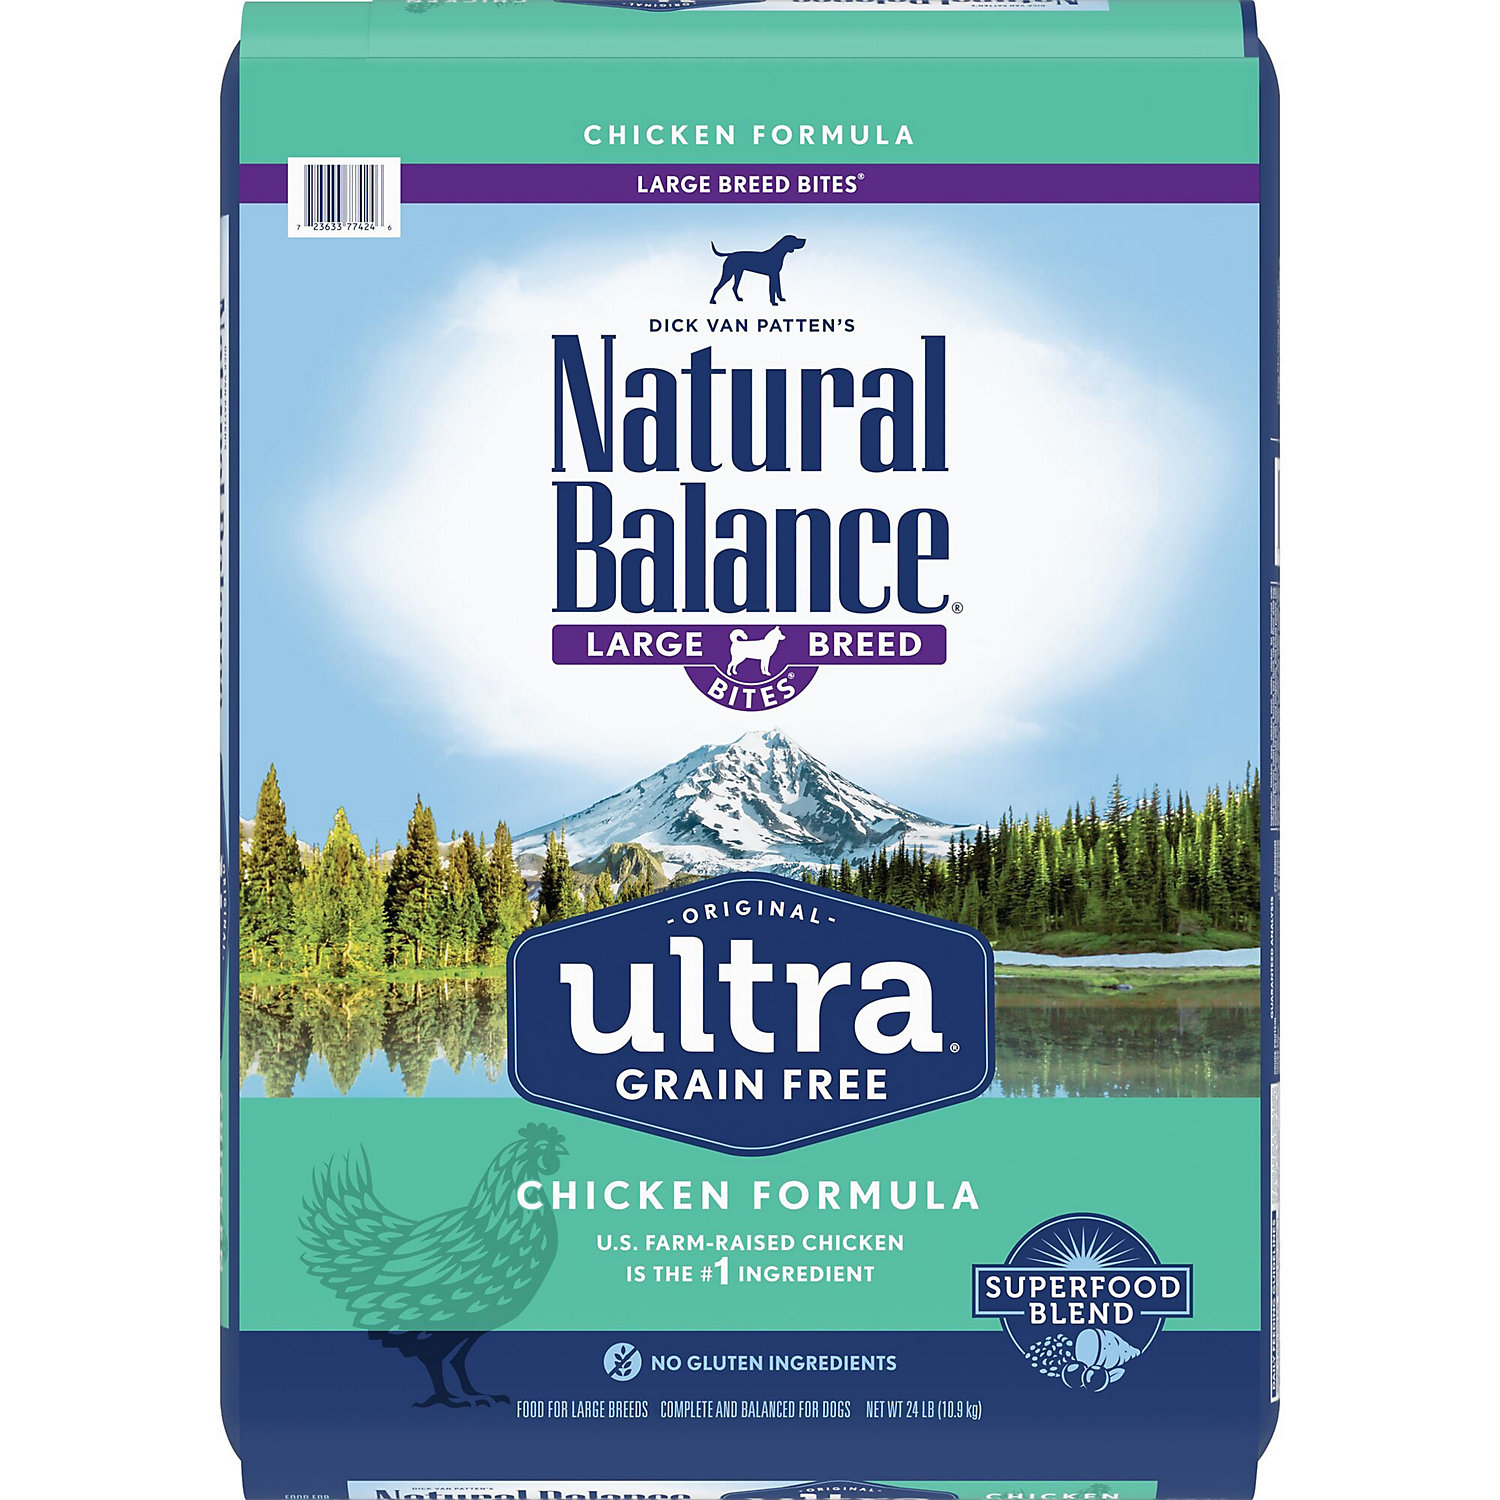 Natural Balance Ultra Grain Free Large Breed Chicken Dry Dog Food